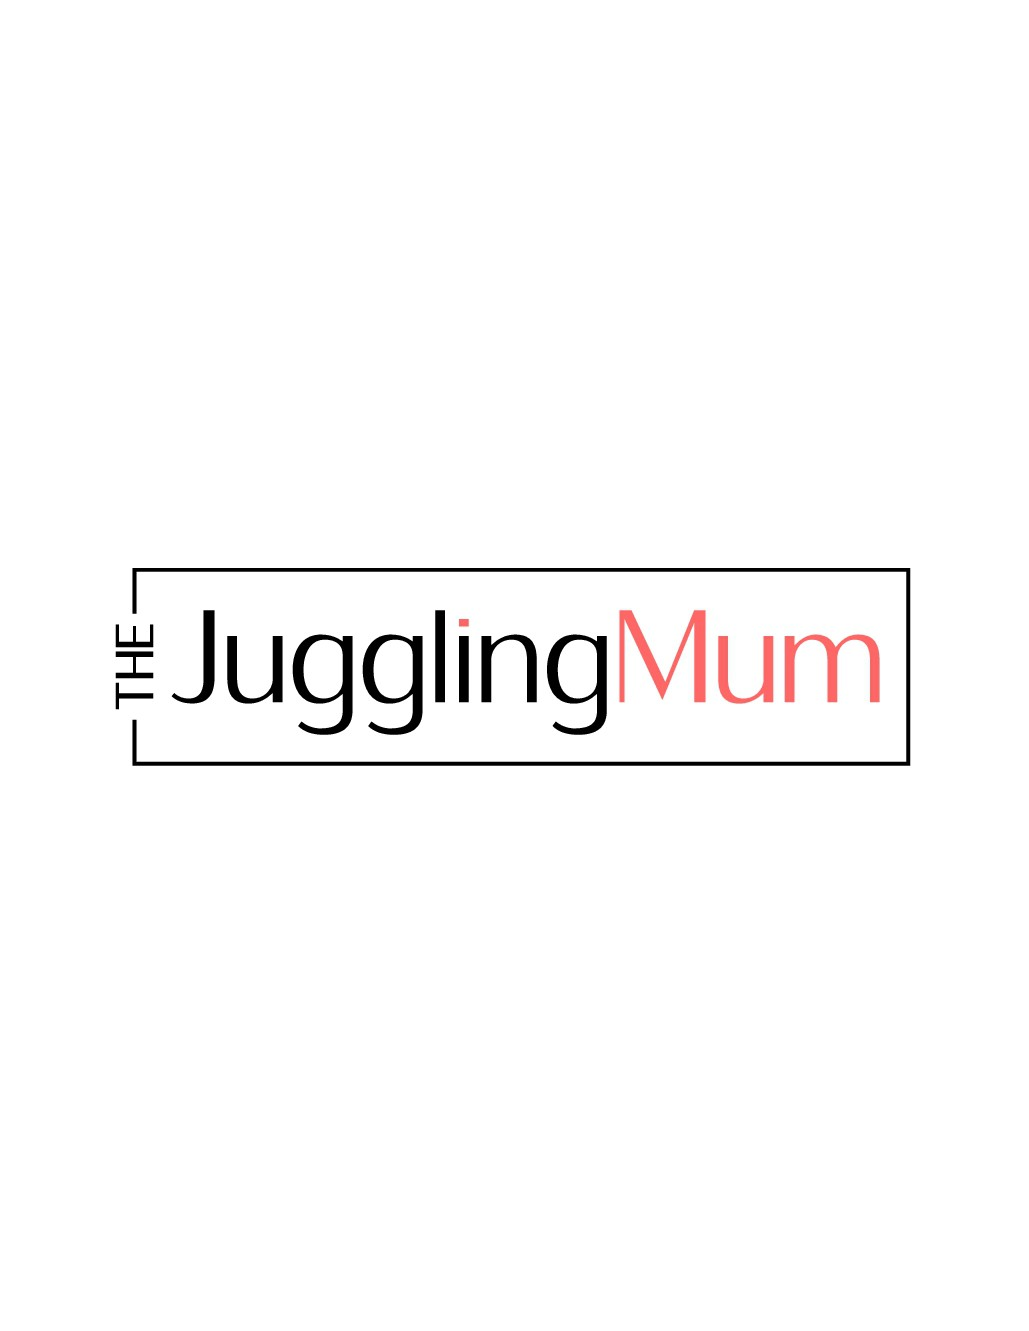 Design a bright and fun logo for The Juggling Mum